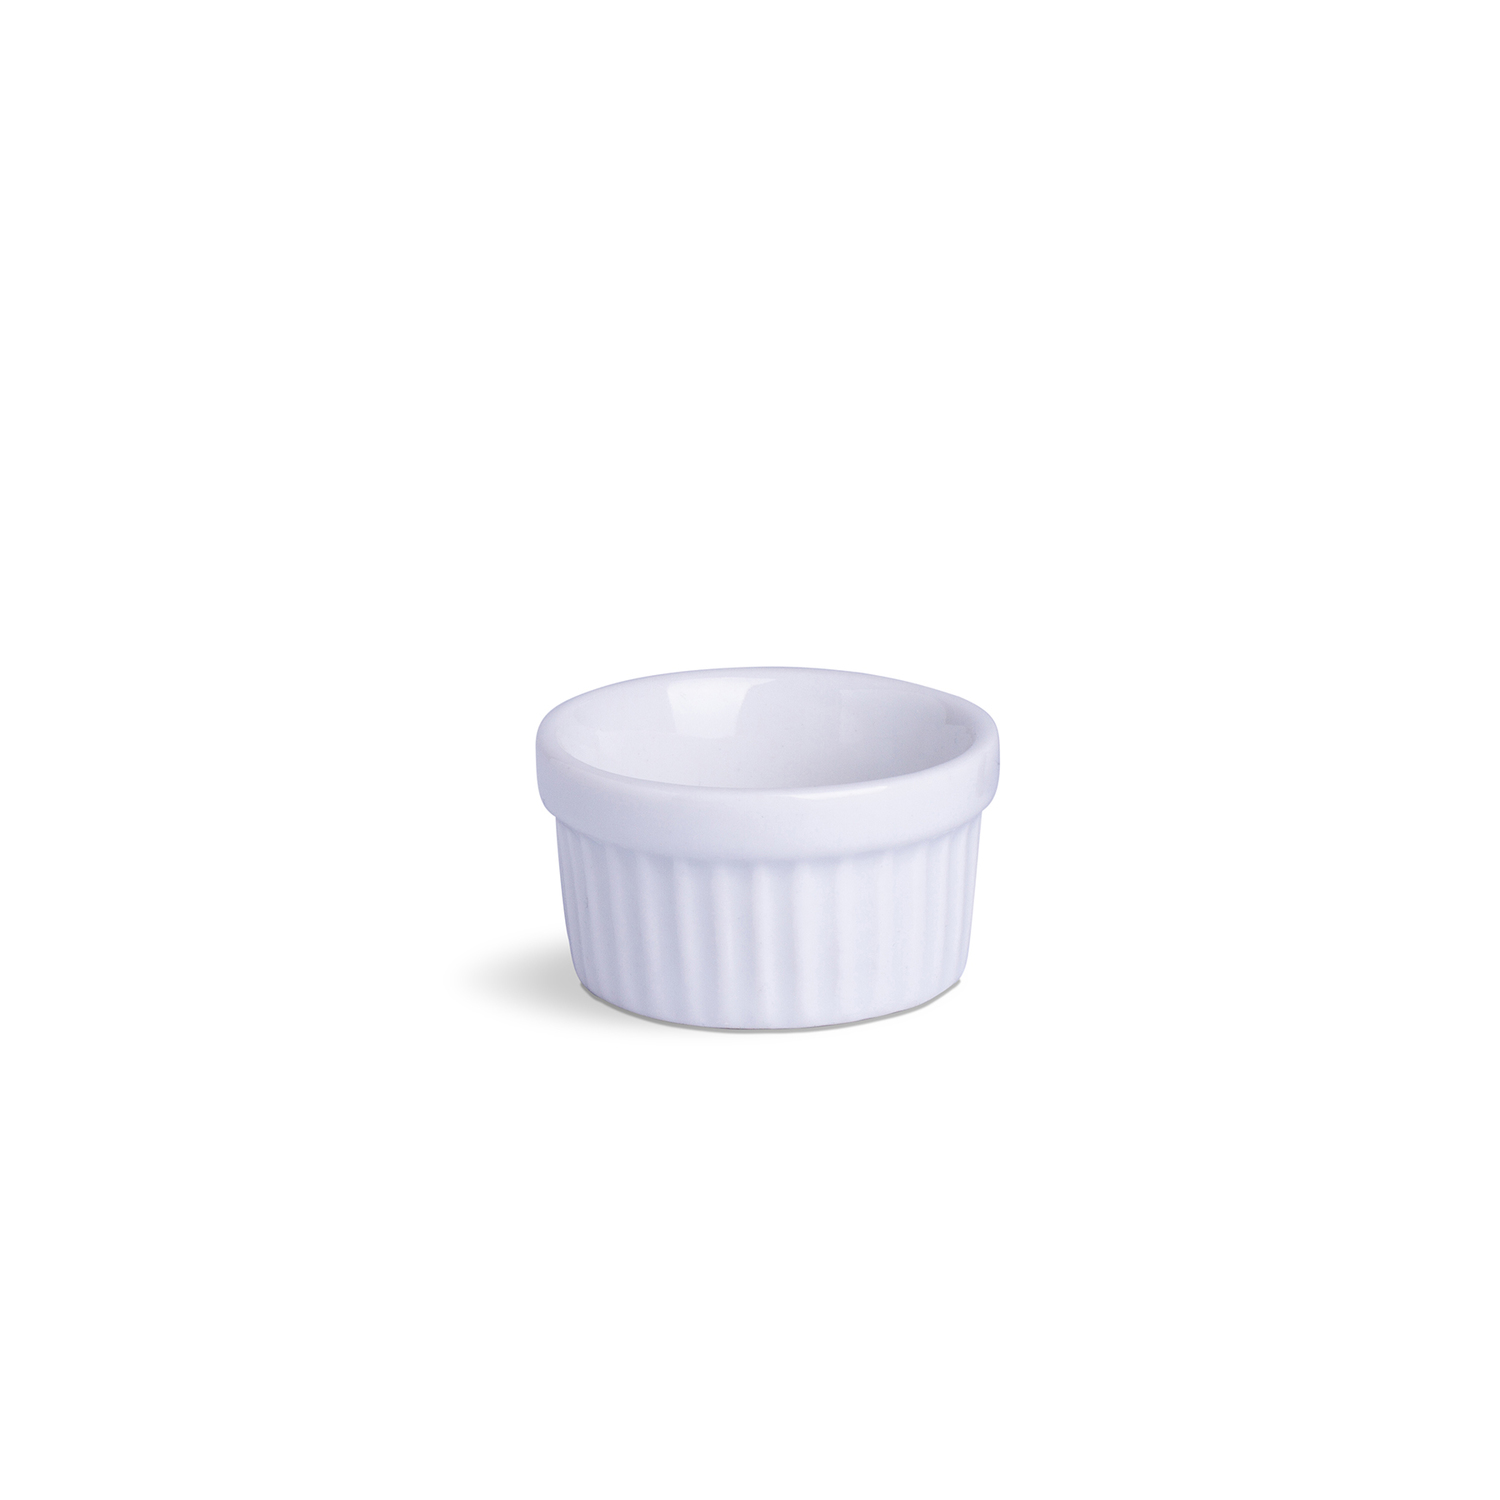 Ramekin Mini Branco Porcelana 30 mL 6 x 6 x 3,5 cm